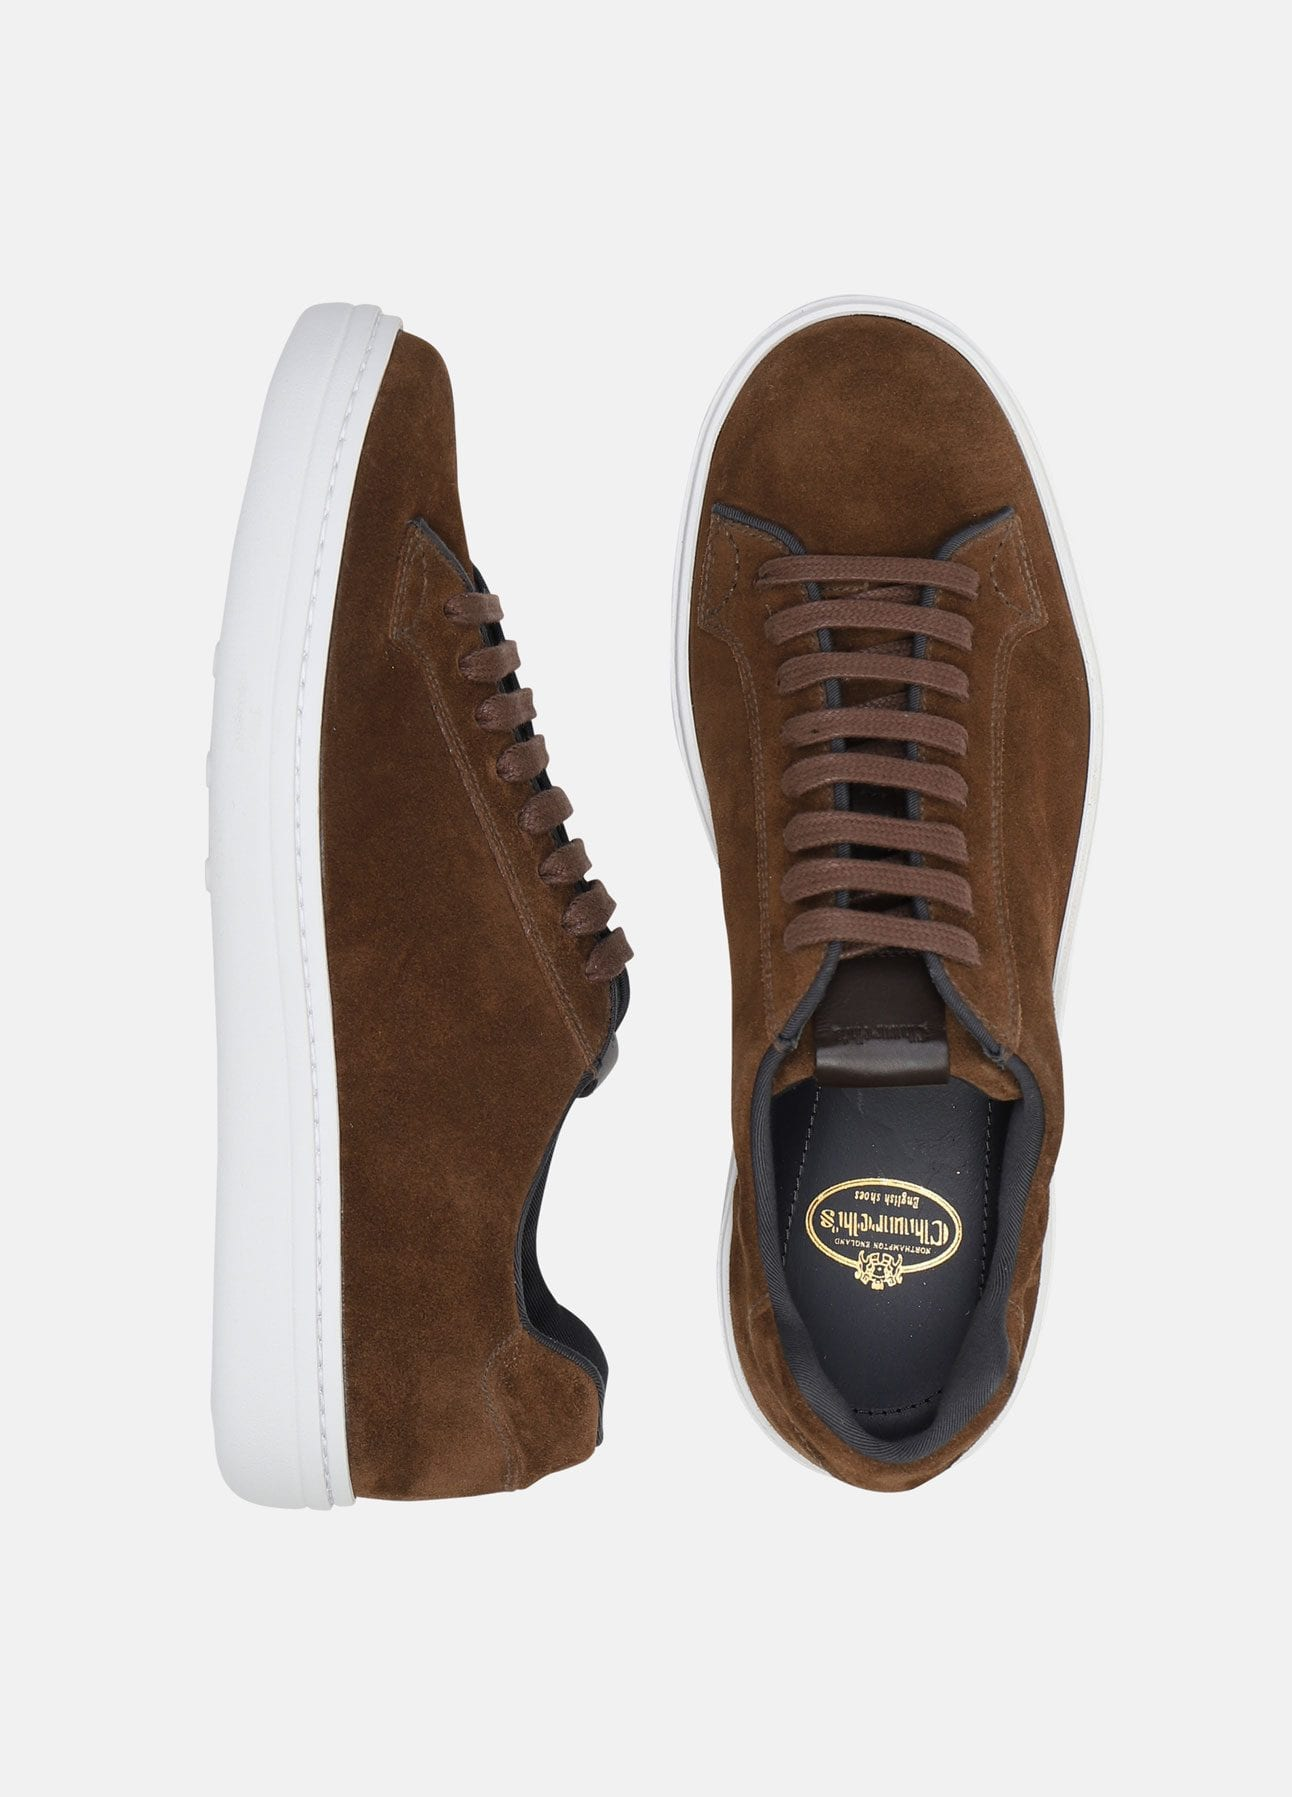 brun mirfield sneakers fra church's